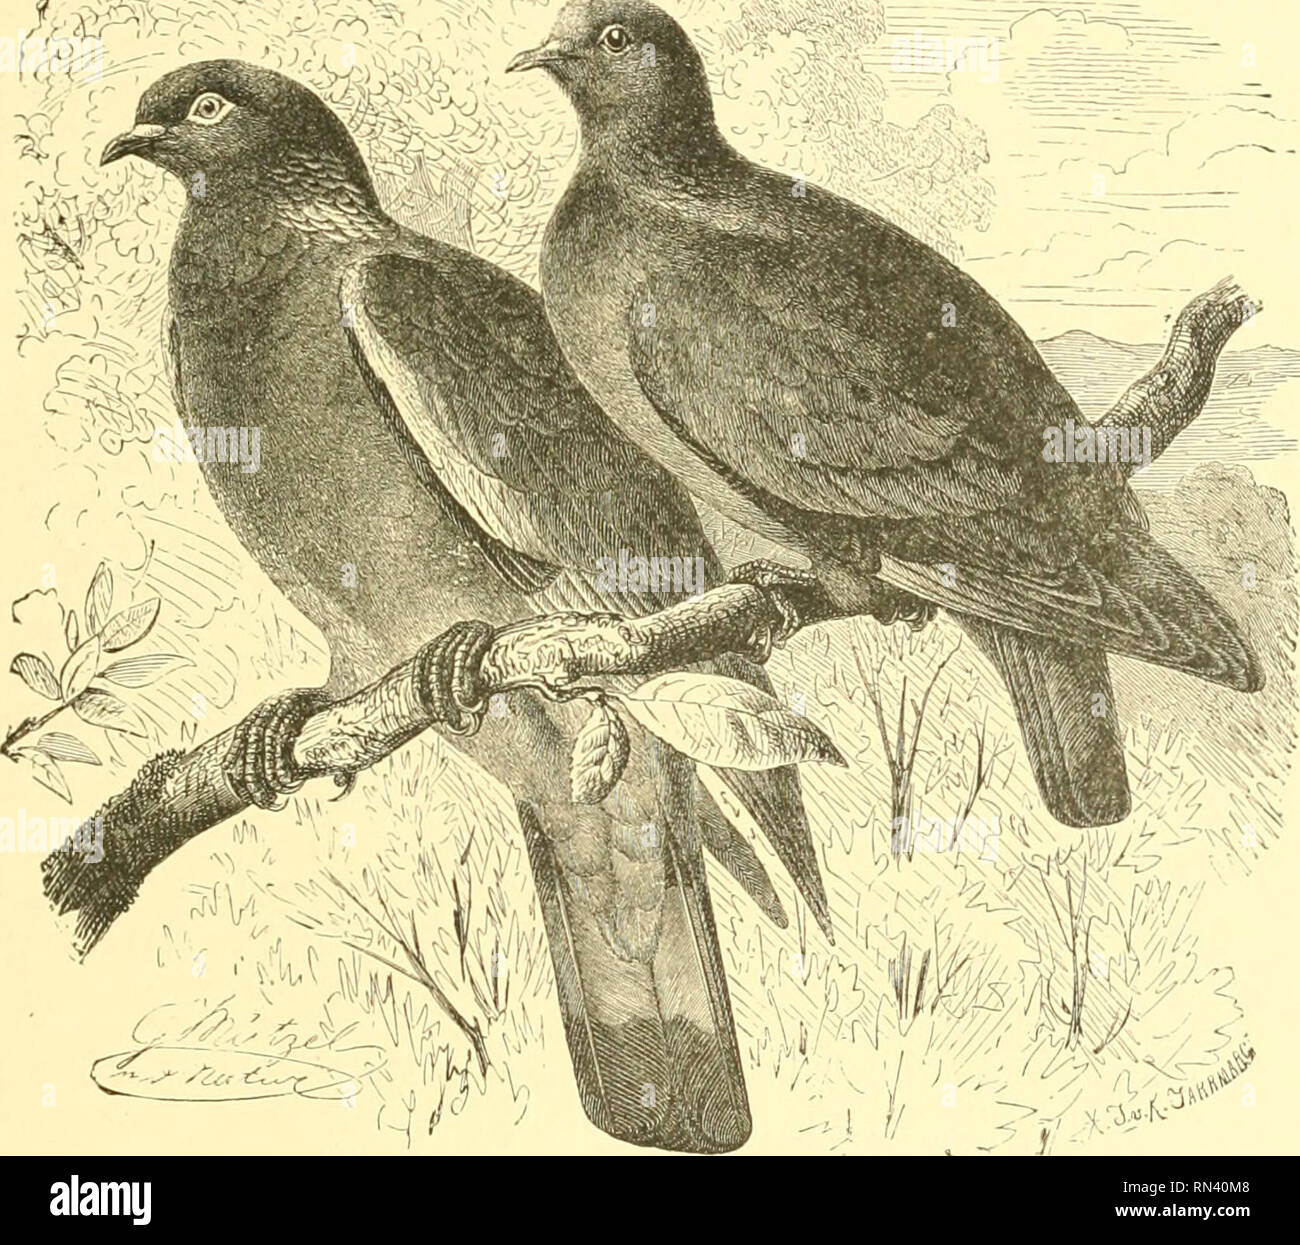 """. Animate creation : popular edition of """"Our living world"""" : a natural history. Zoology; Zoology. THE RING-DOVE. 443 nest, and fastening it to the branch. The young birds are thereby prevented from escaping, and are sure to be at hand when wanted. Even when adult the Ring-Dove is a favorite article of food, and is shot by hundreds when they flock together in the cold weather. They also exhibit a decided partiality for certain roosting-i^laces, and can be shot by waiting under the trees to which they have taken a liking. The food of this Dove consists of grain and seeds of various kin - Stock Image"""